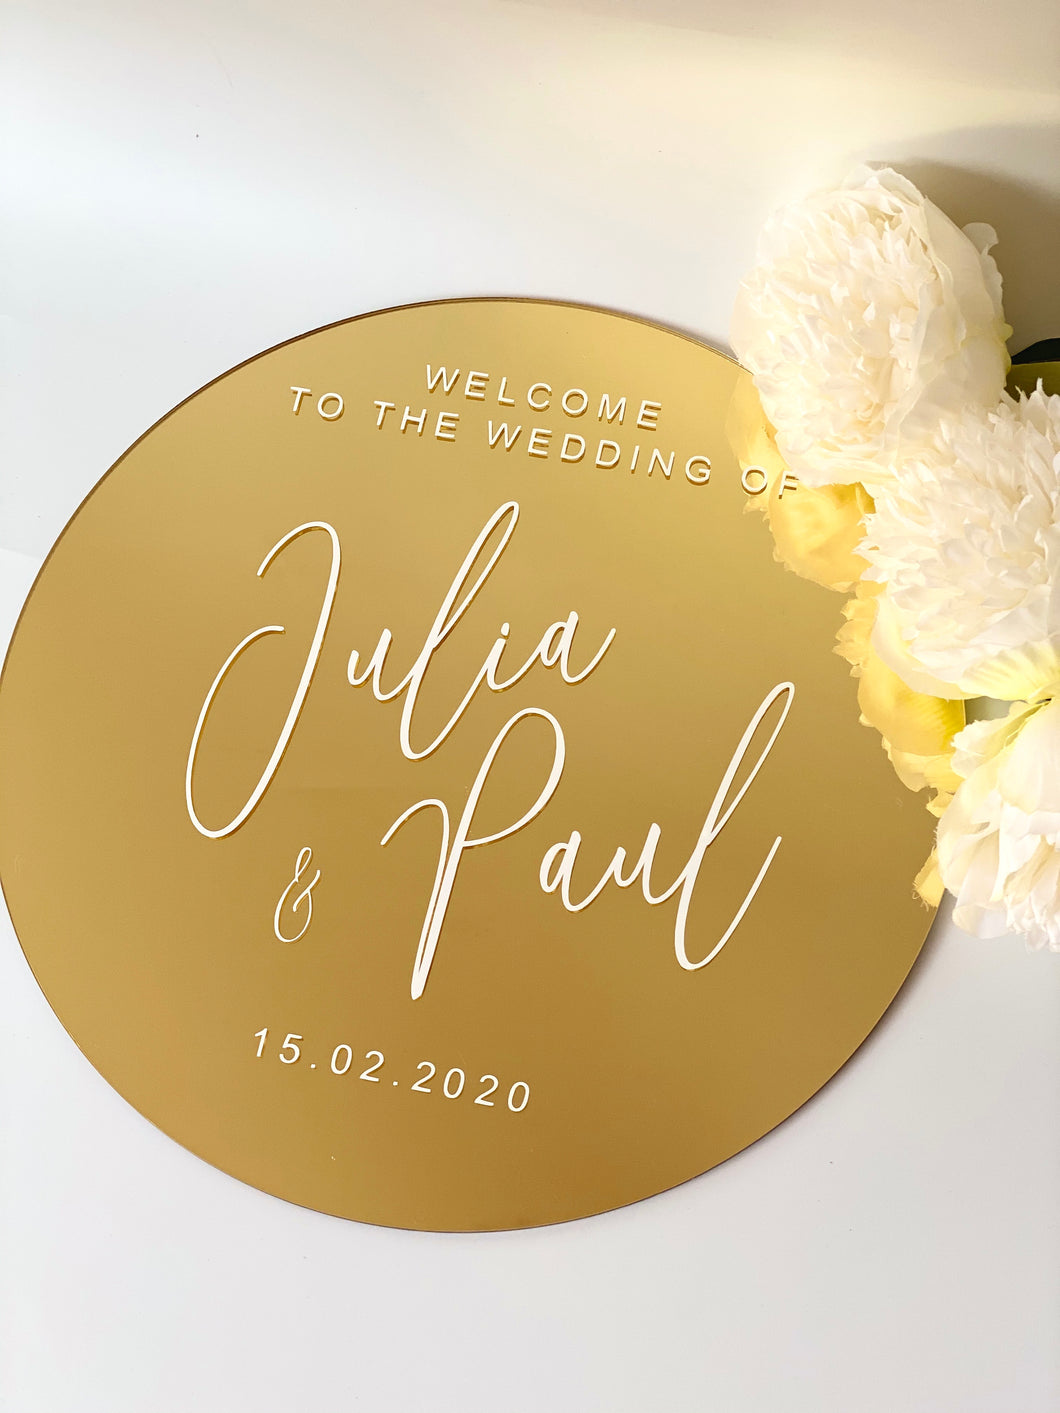 Personalised Round Acrylic Sign - 80 cm